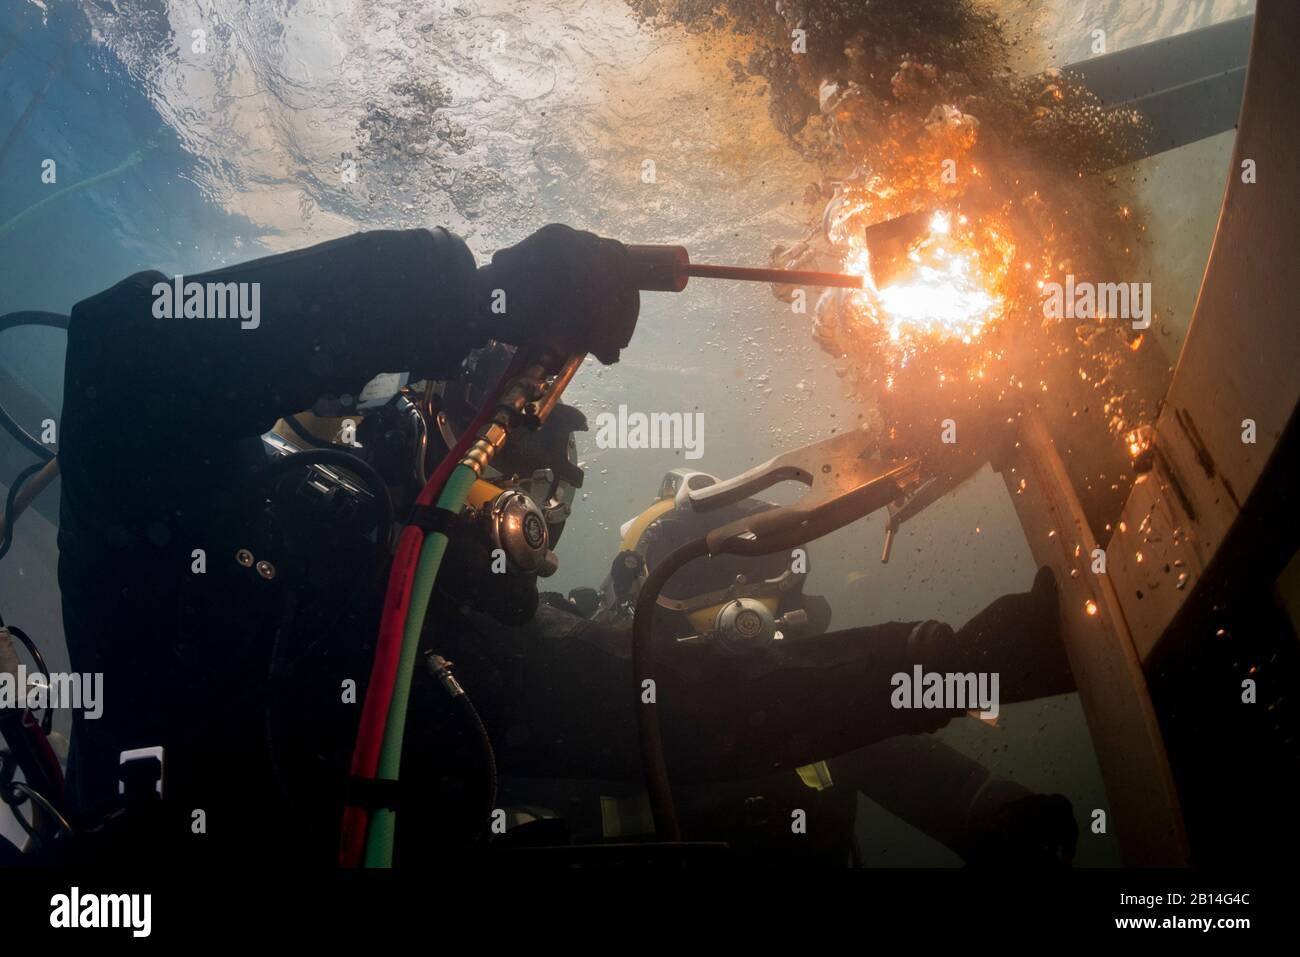 U.S. Navy Equipment Operator 3rd Class Thomas Dahlke, assigned to Underwater Construction Team 2, cuts a piece of steel in a training pool at the Republic of Korea (ROK) Naval Education and Training Command during exercise Foal Eagle in Jinhae, South Korea, March 31, 2017. Foal Eagle is an annual, bilateral training exercise designed to enhance the readiness of U.S. and ROK forces and their ability to work together during a crisis. (U.S. Navy photo by Chief Mass Communication Specialist Brett Cote) Stock Photo